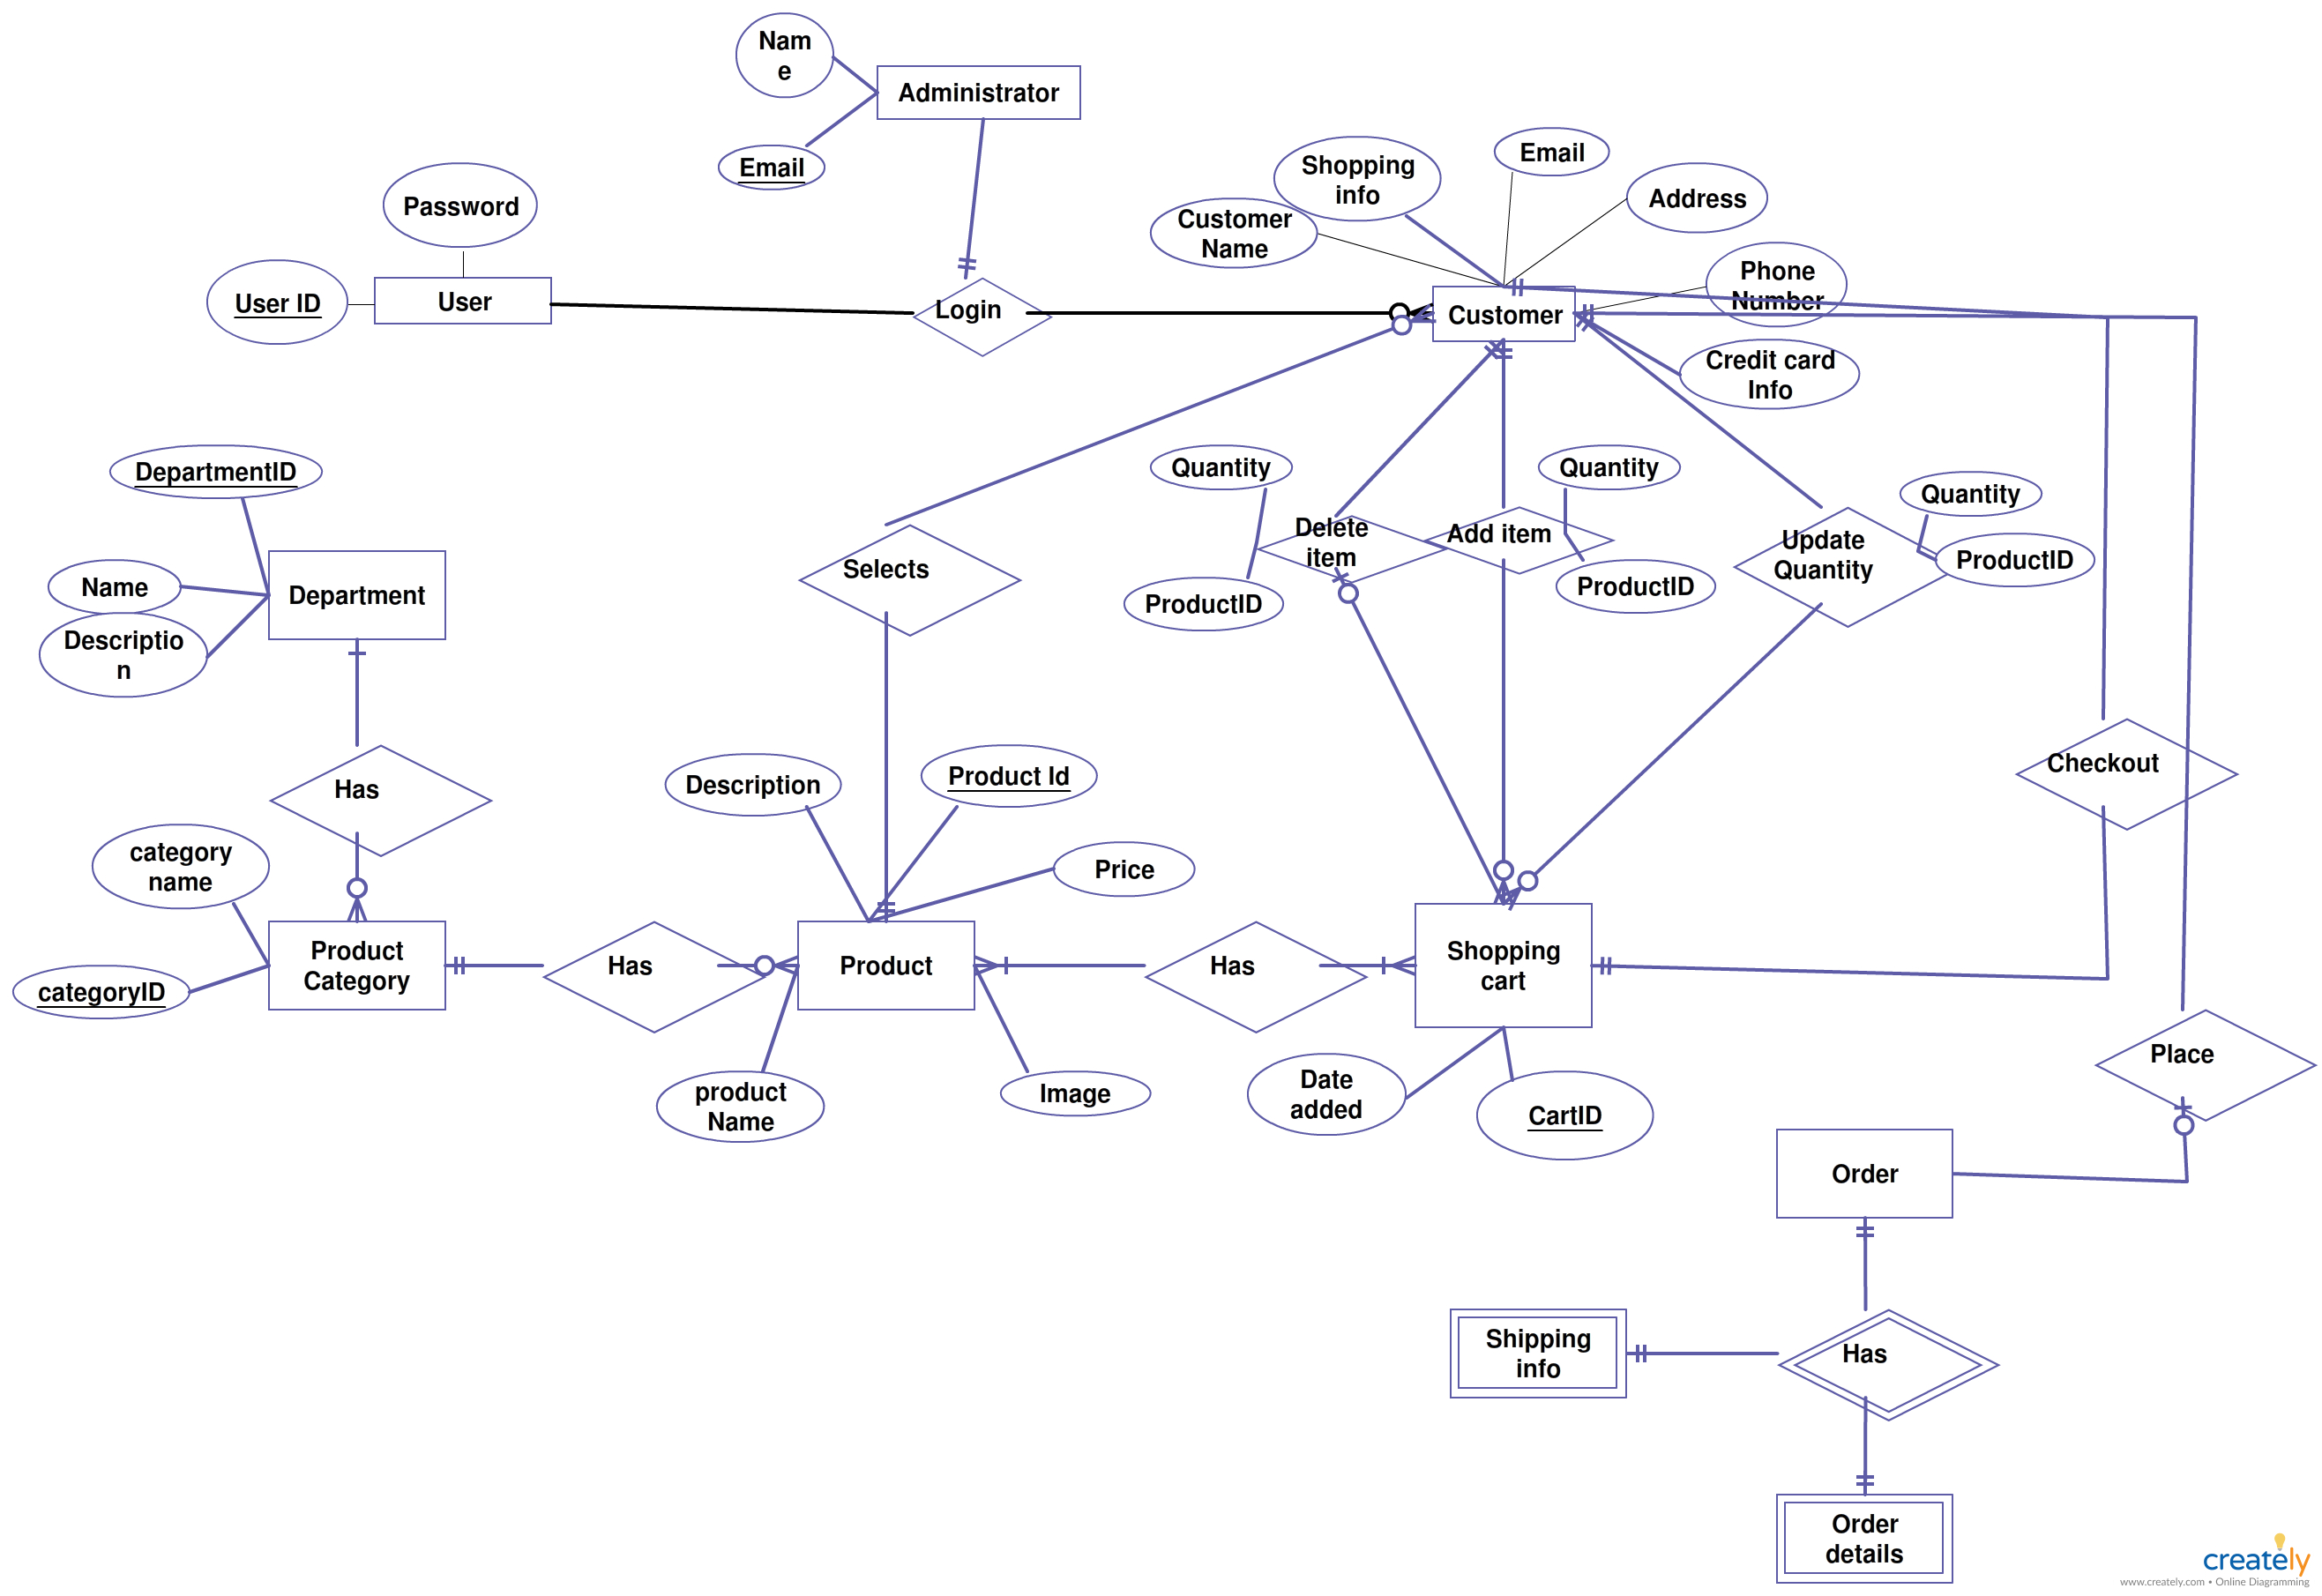 Er Diagrams Help Us To Visualize How Data Is Connected In A General with Er Diagram Examples Doc